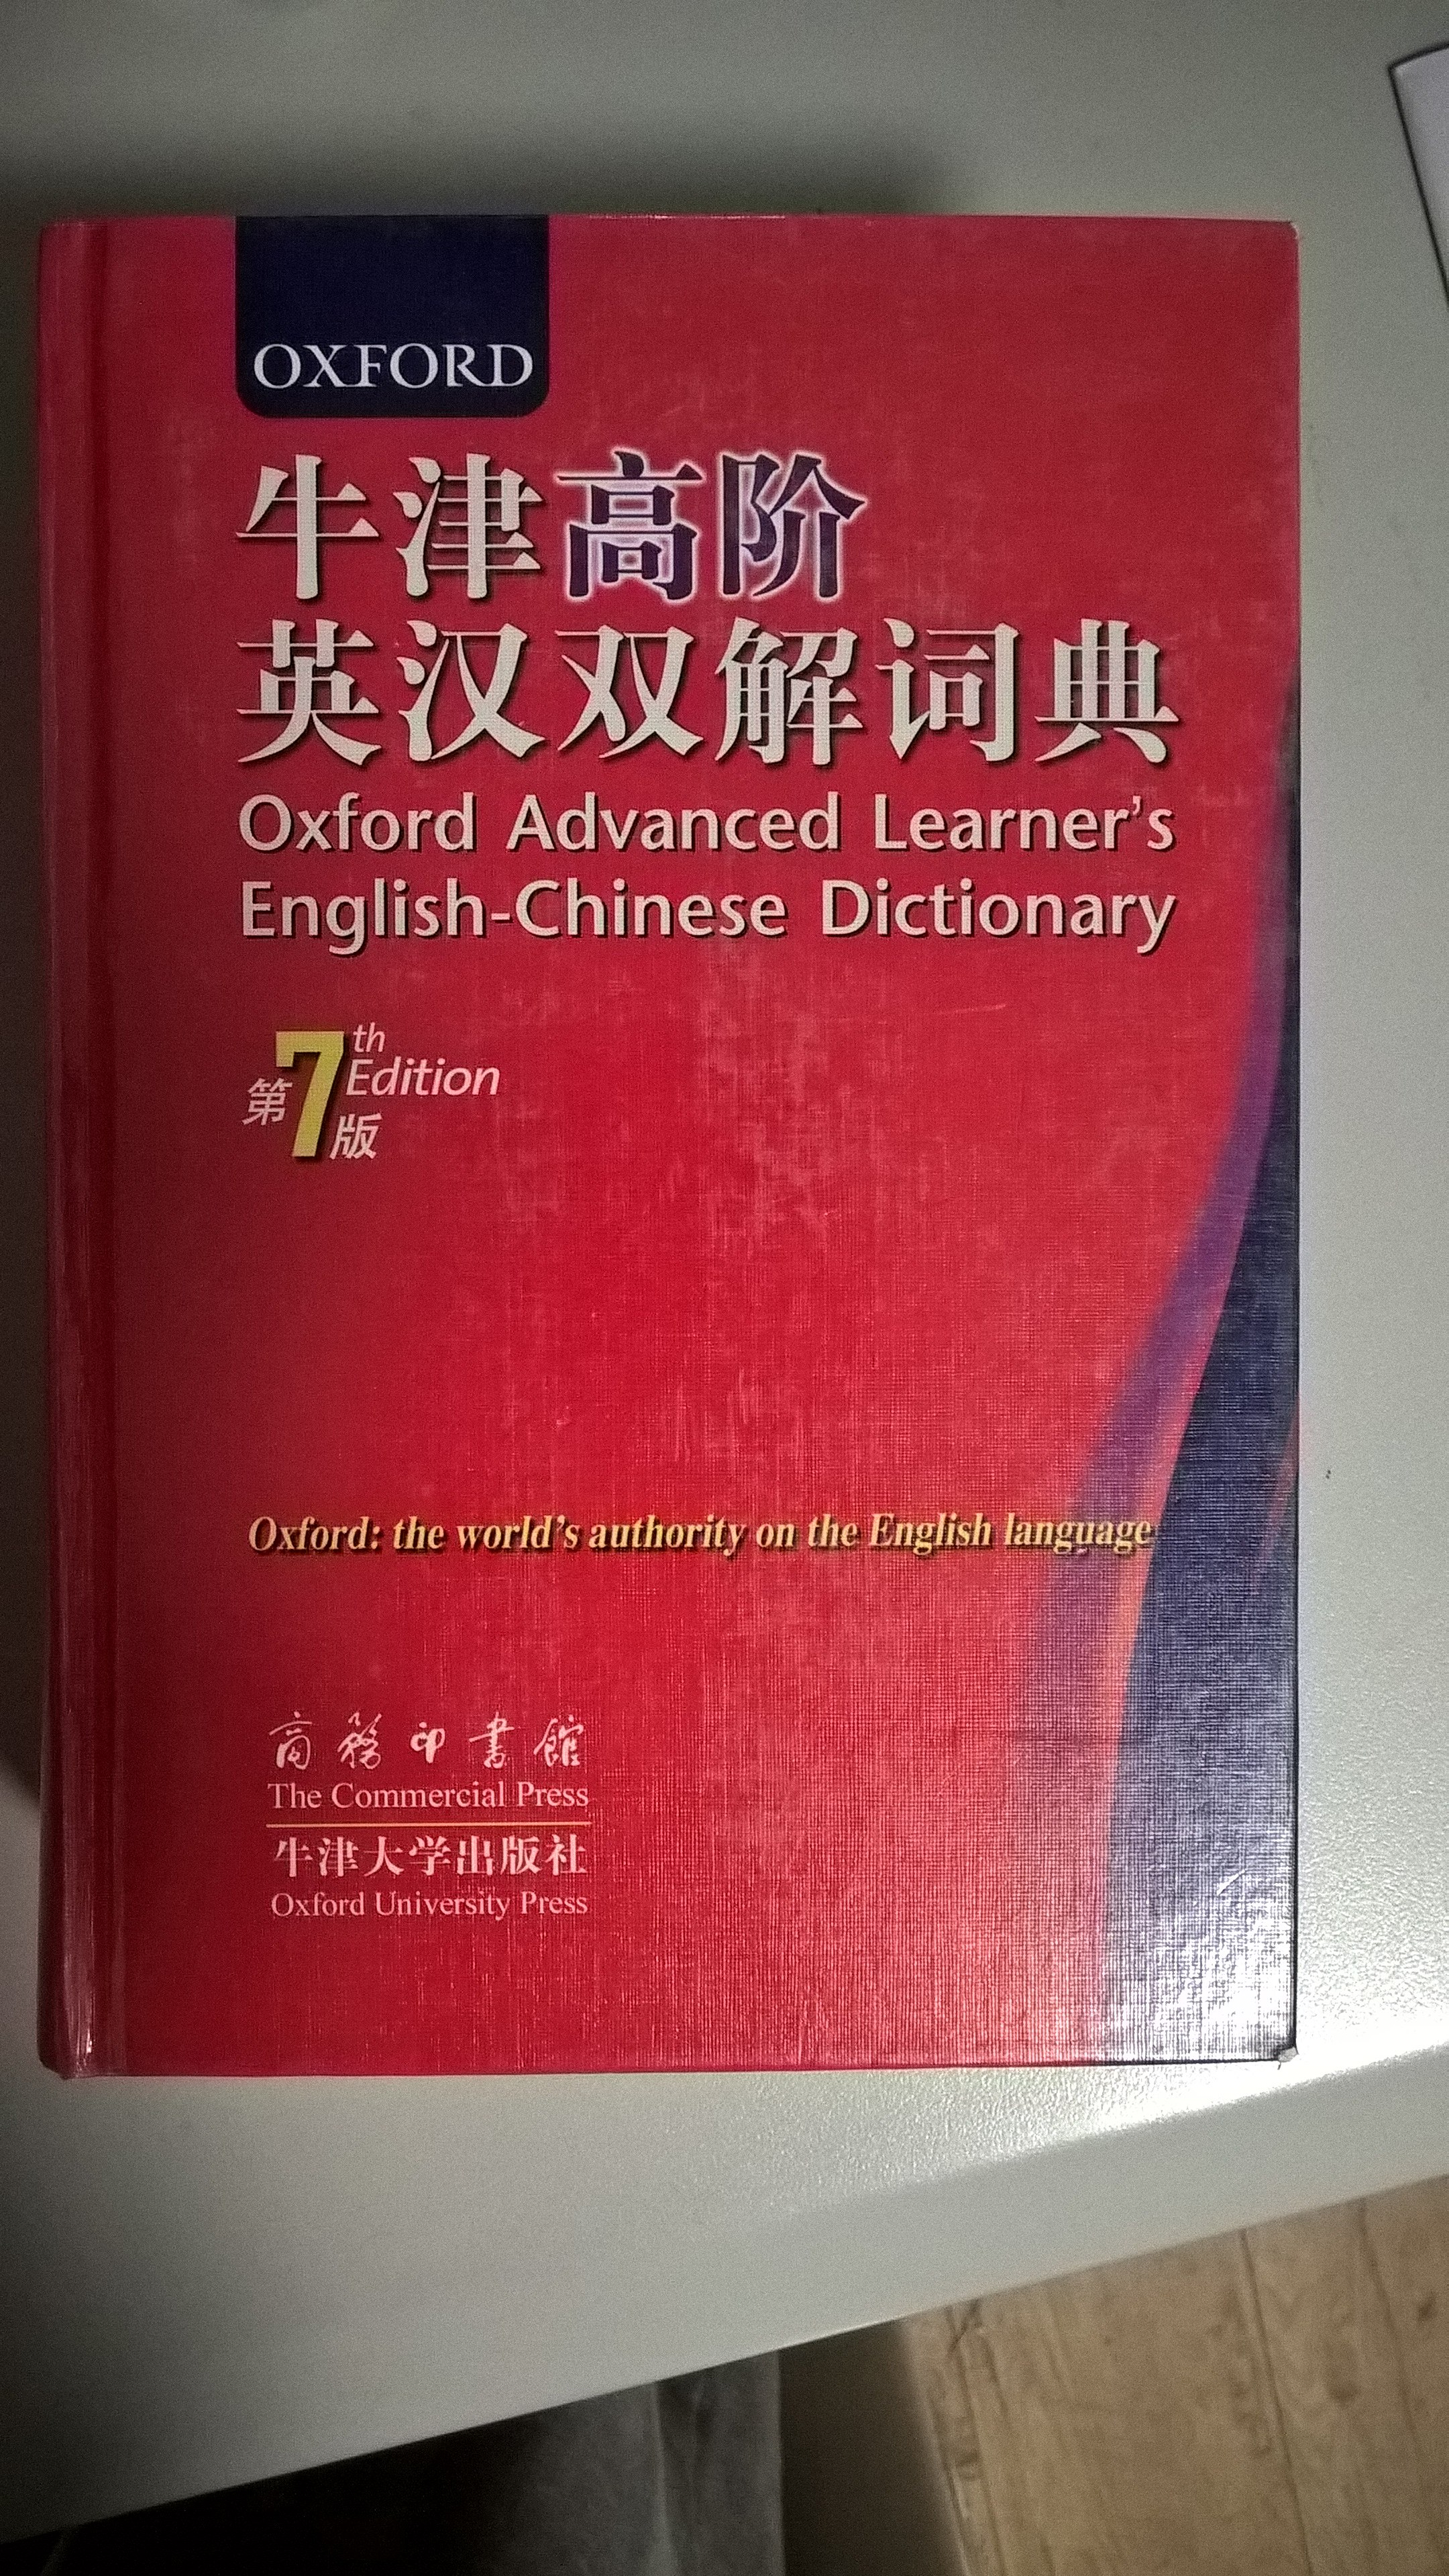 File:Oxford Advanced Learner's English-Chinese Dictionary